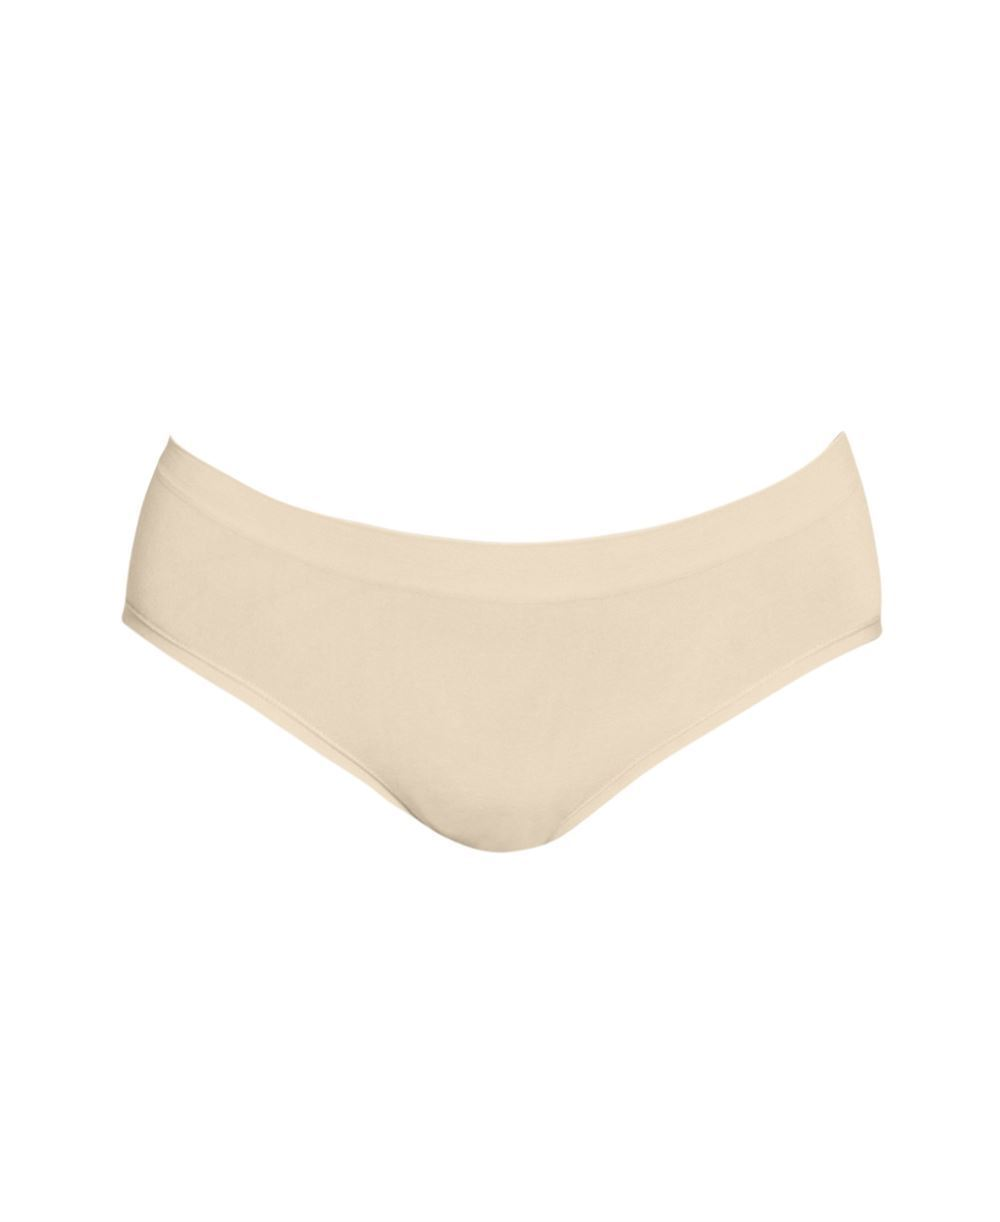 Nude Maternity panties in soft bamboo fibres - Organically grown - Detail front